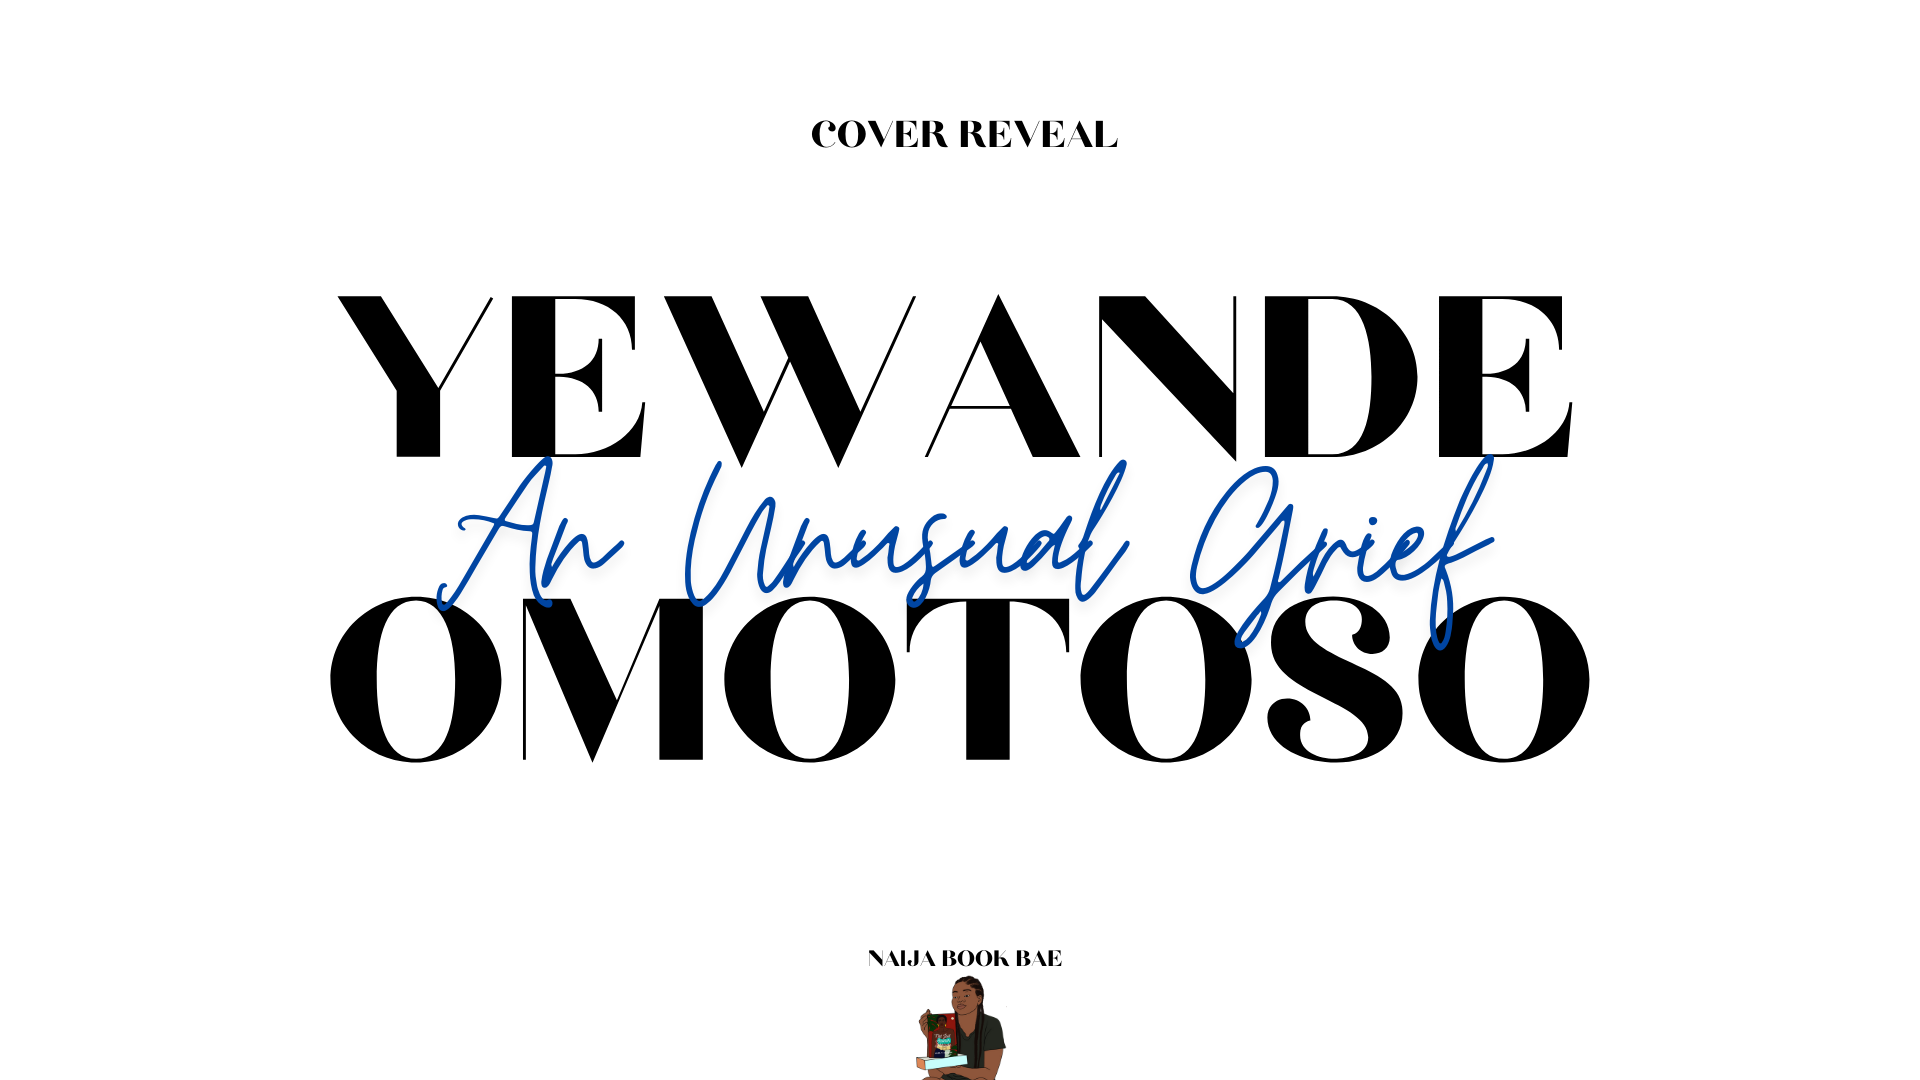 Cover Reveal: An Unusual Grief by Yewande Omotoso